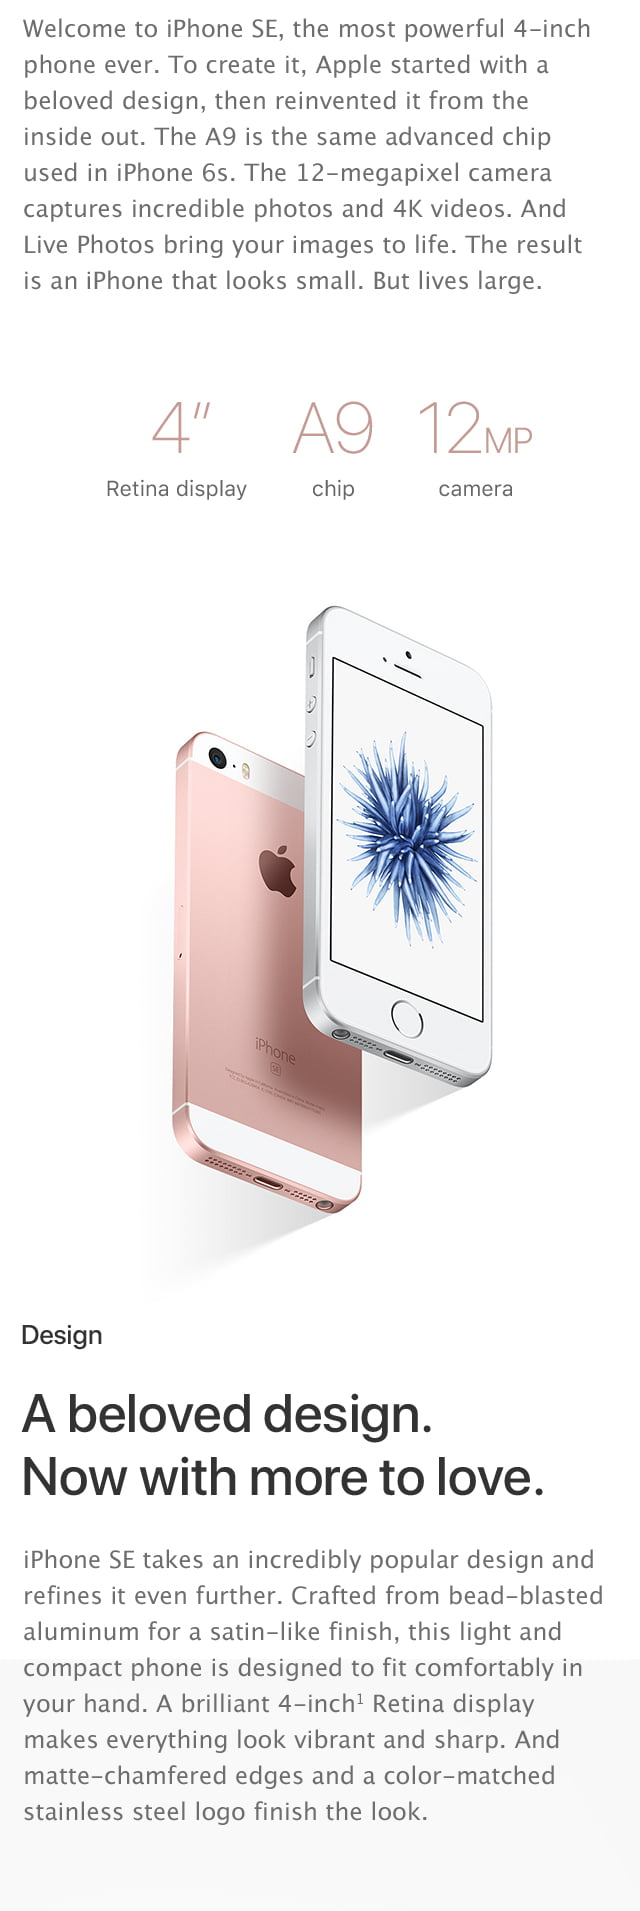 iPhone SE, the most powerful 4-inch iPhone yet